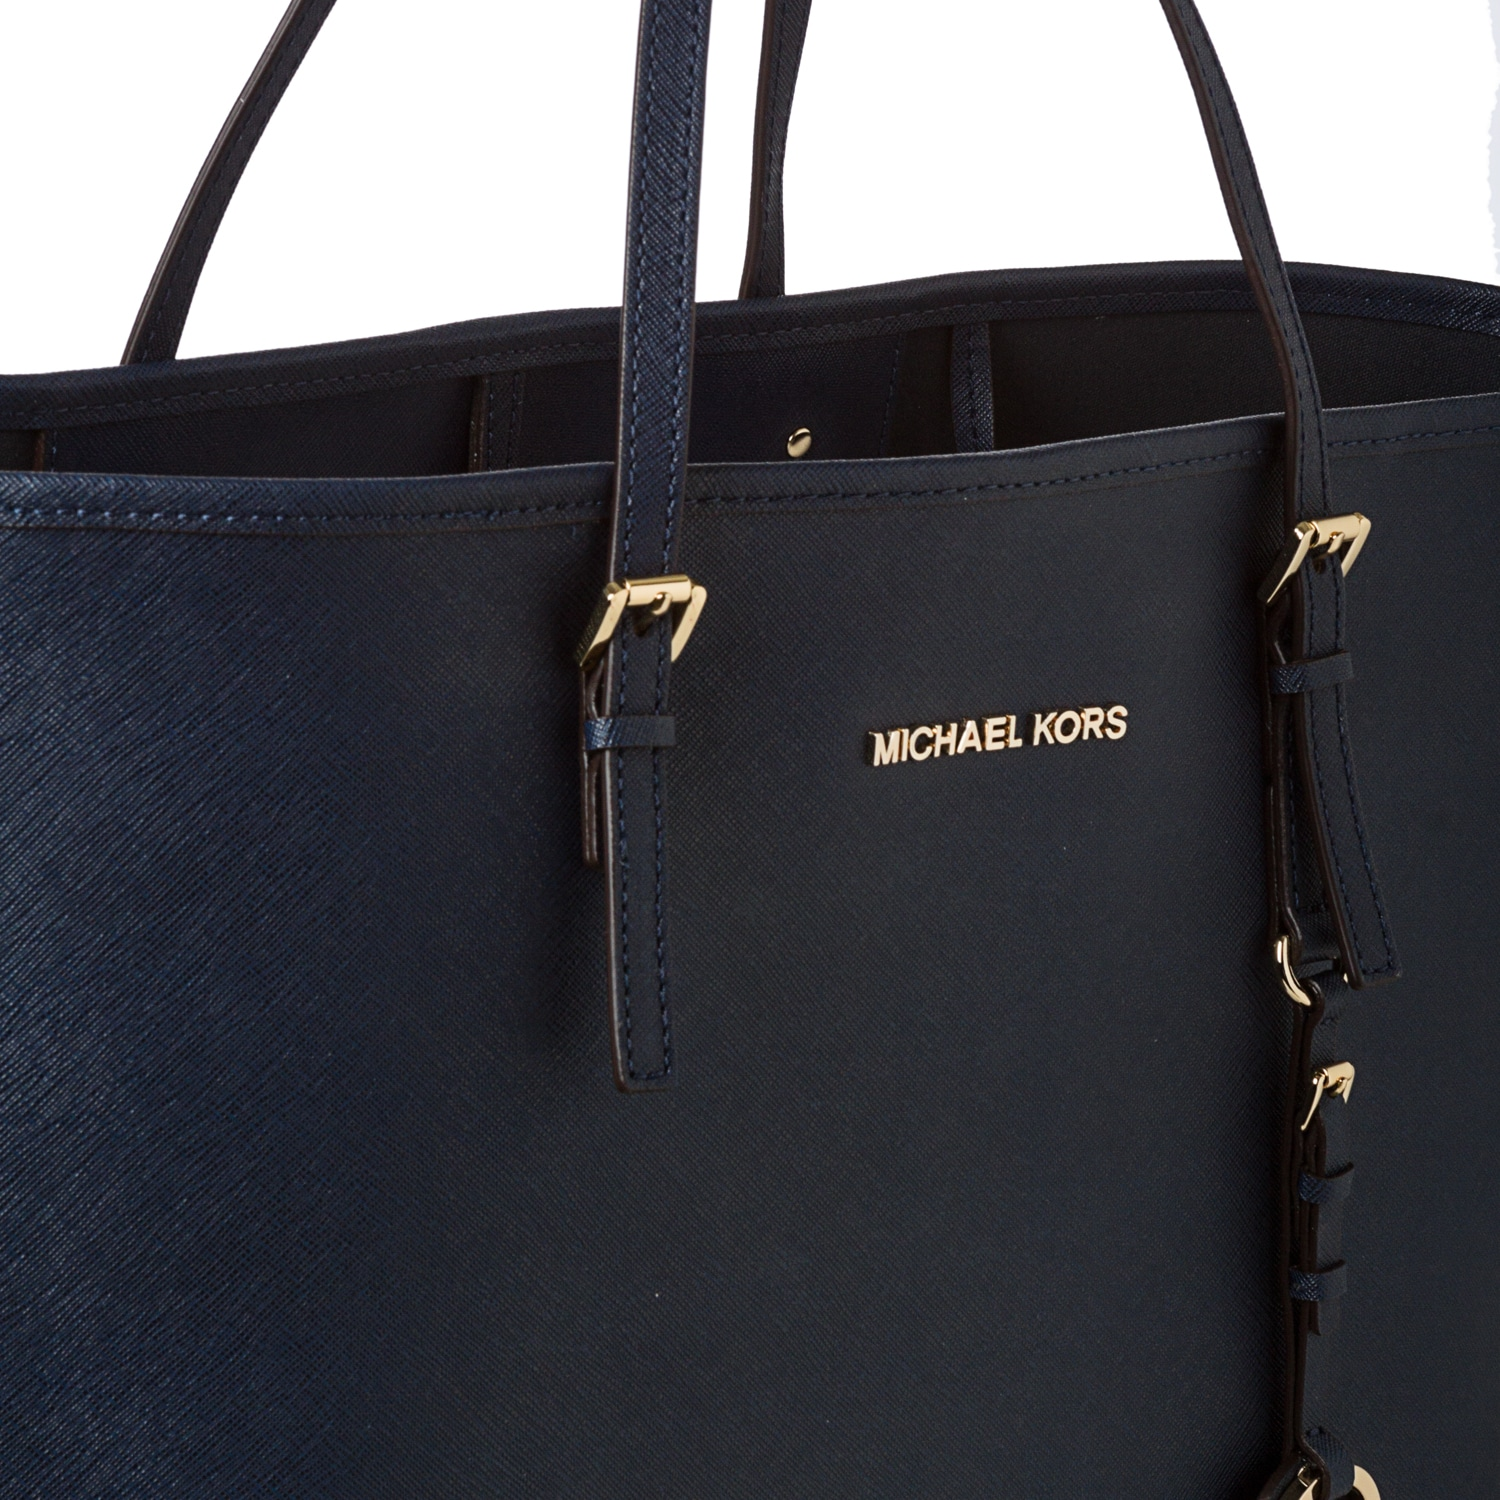 051b20676cd0 Shop MICHAEL Michael Kors 'Jet Set' Medium Navy Saffiano Leather Travel Tote  - Free Shipping Today - Overstock - 7858110